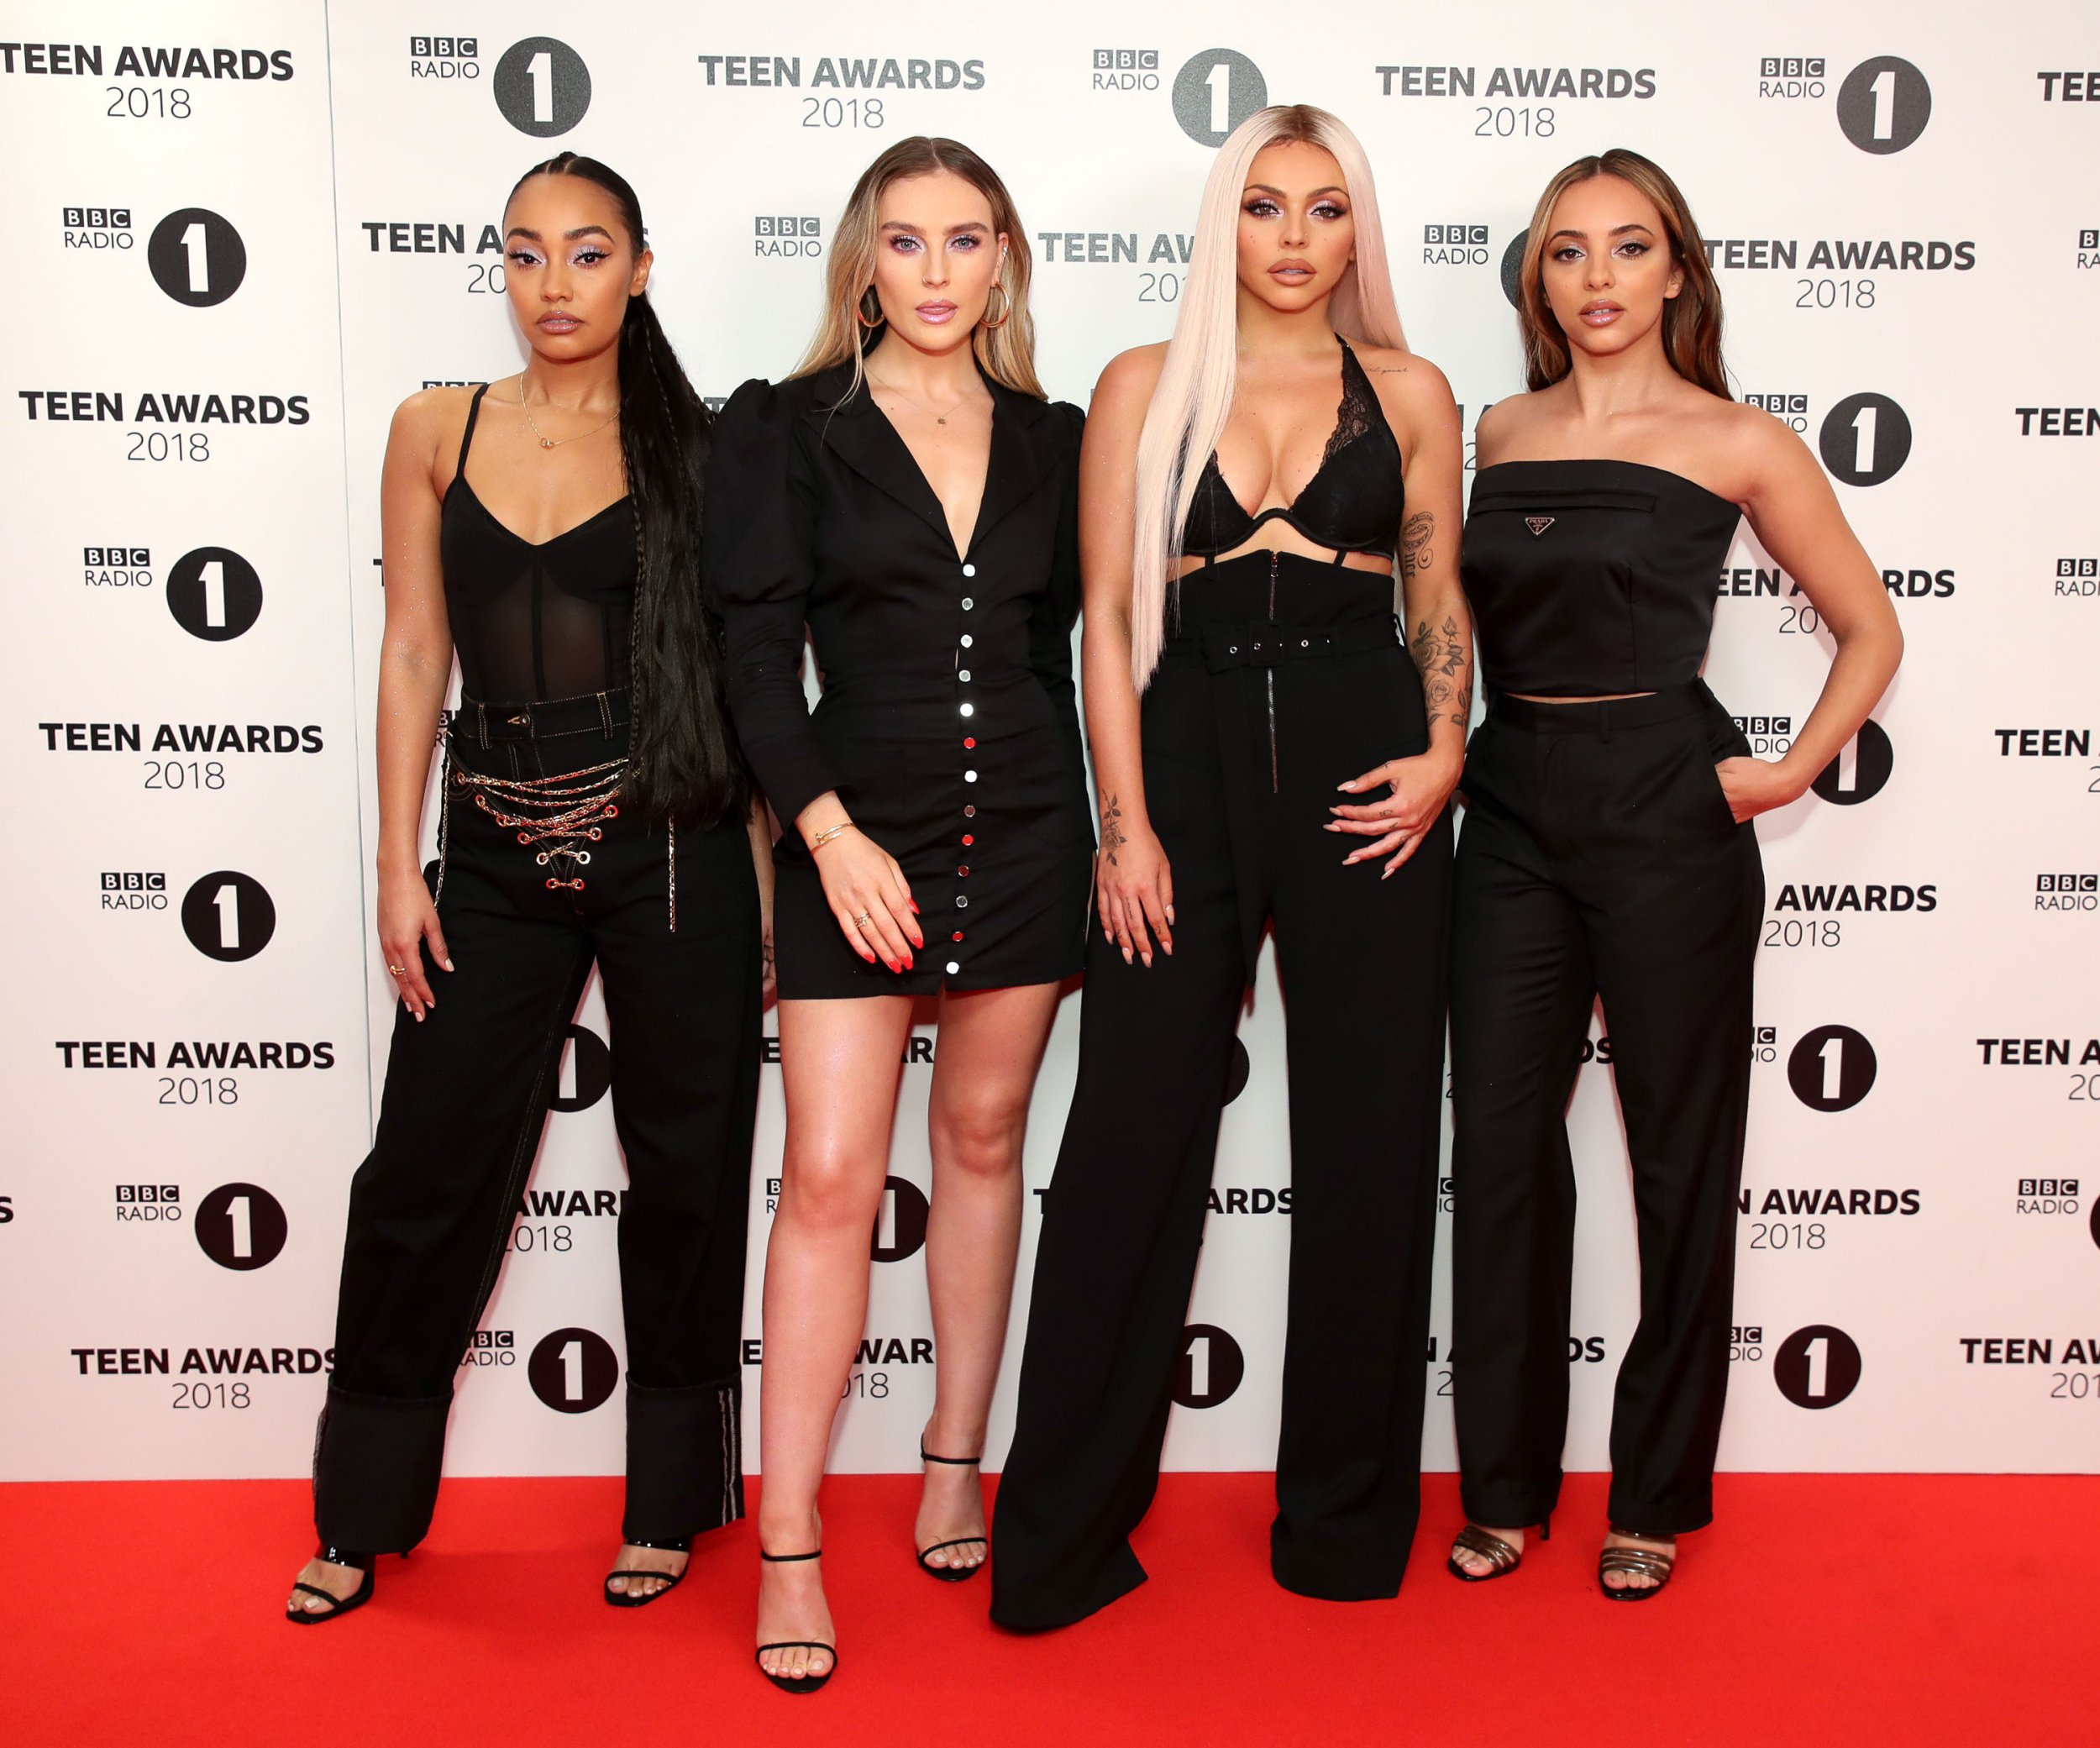 Jesy Nelson on the #MeToo movement: 'Little Mix are too intimidating to be harassed'